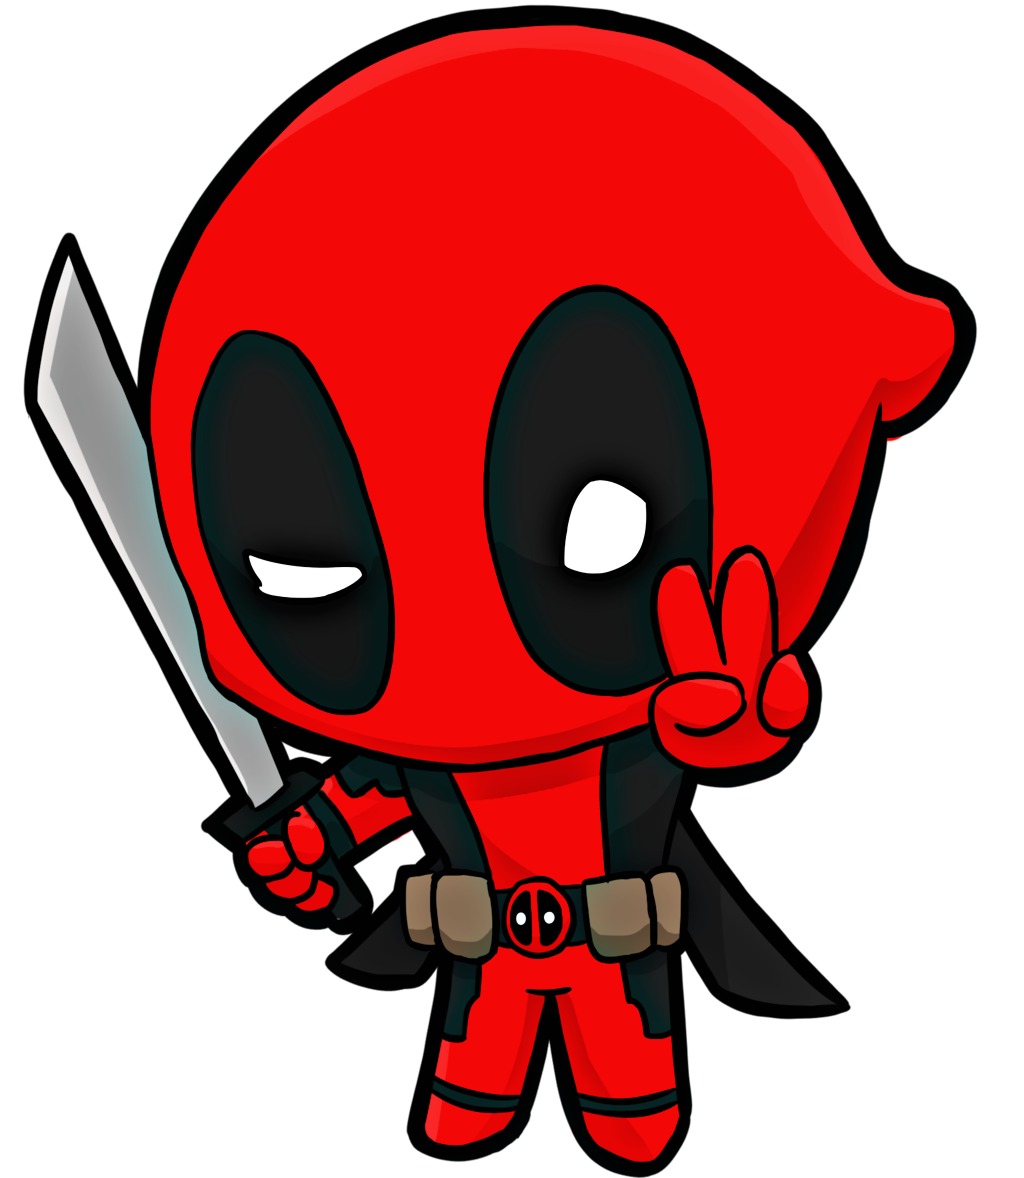 Deadpool clipart deadpool 2. Cute freetoedit